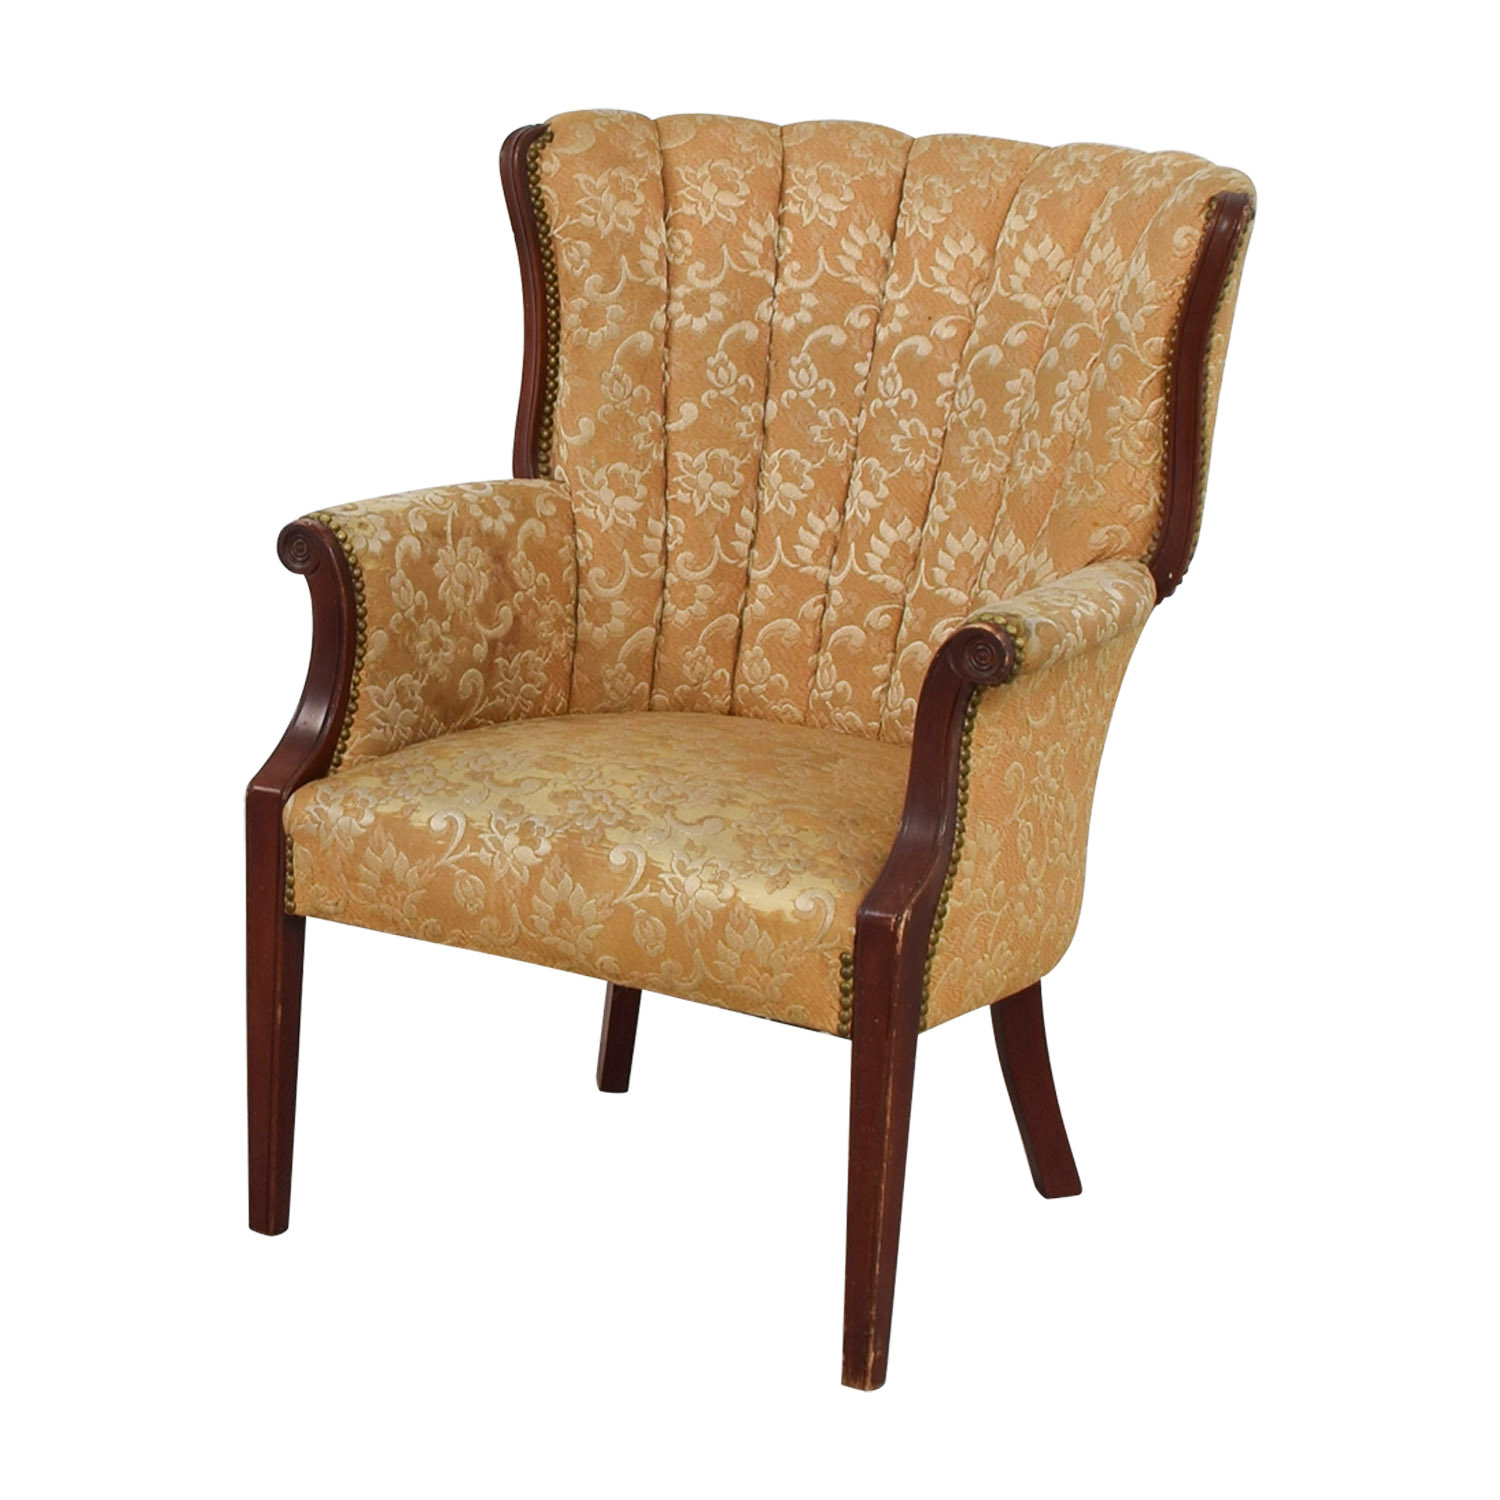 Accent Chairs Prices 87 Off Antique Indigo Yellow Wingback Accent Chair Chairs